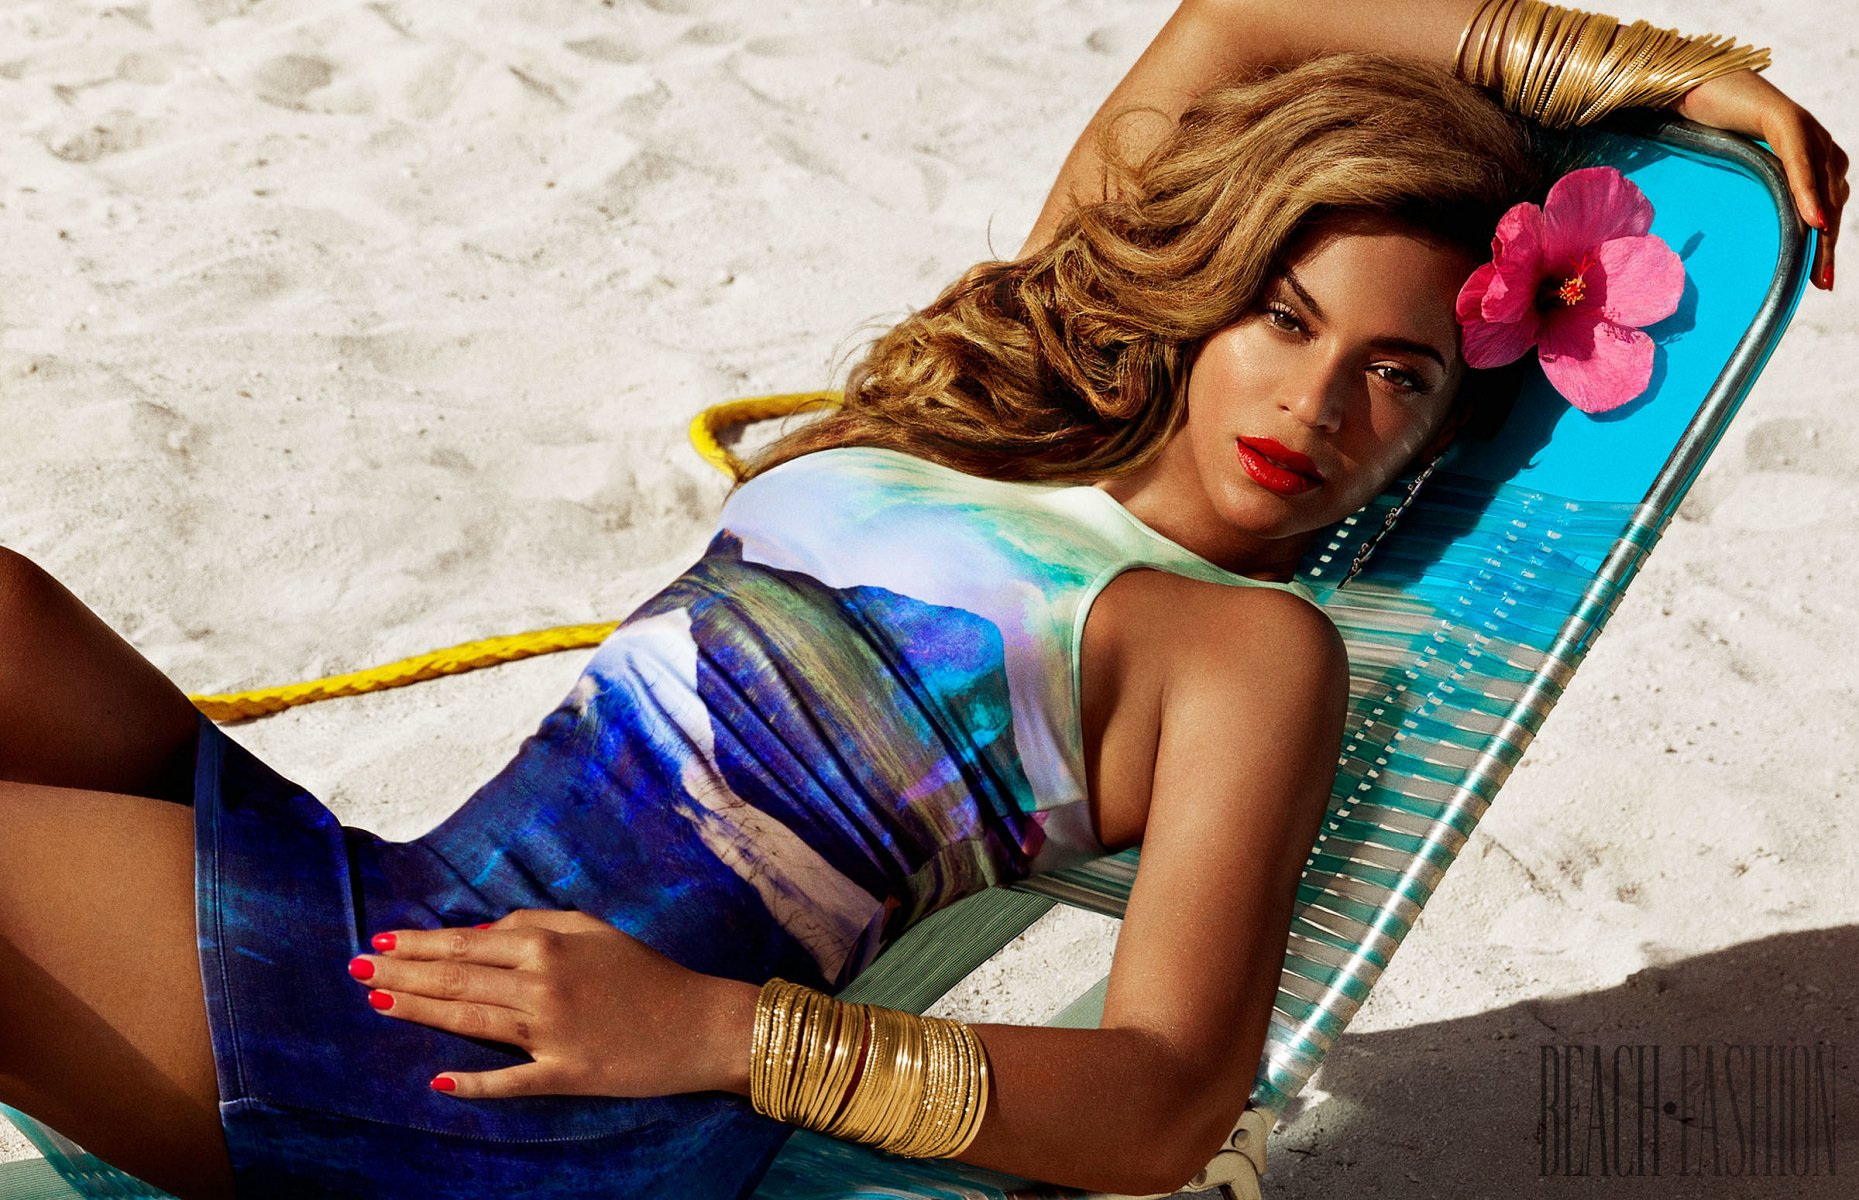 H&M with Beyoncé 2013 collection - Swimwear - 1